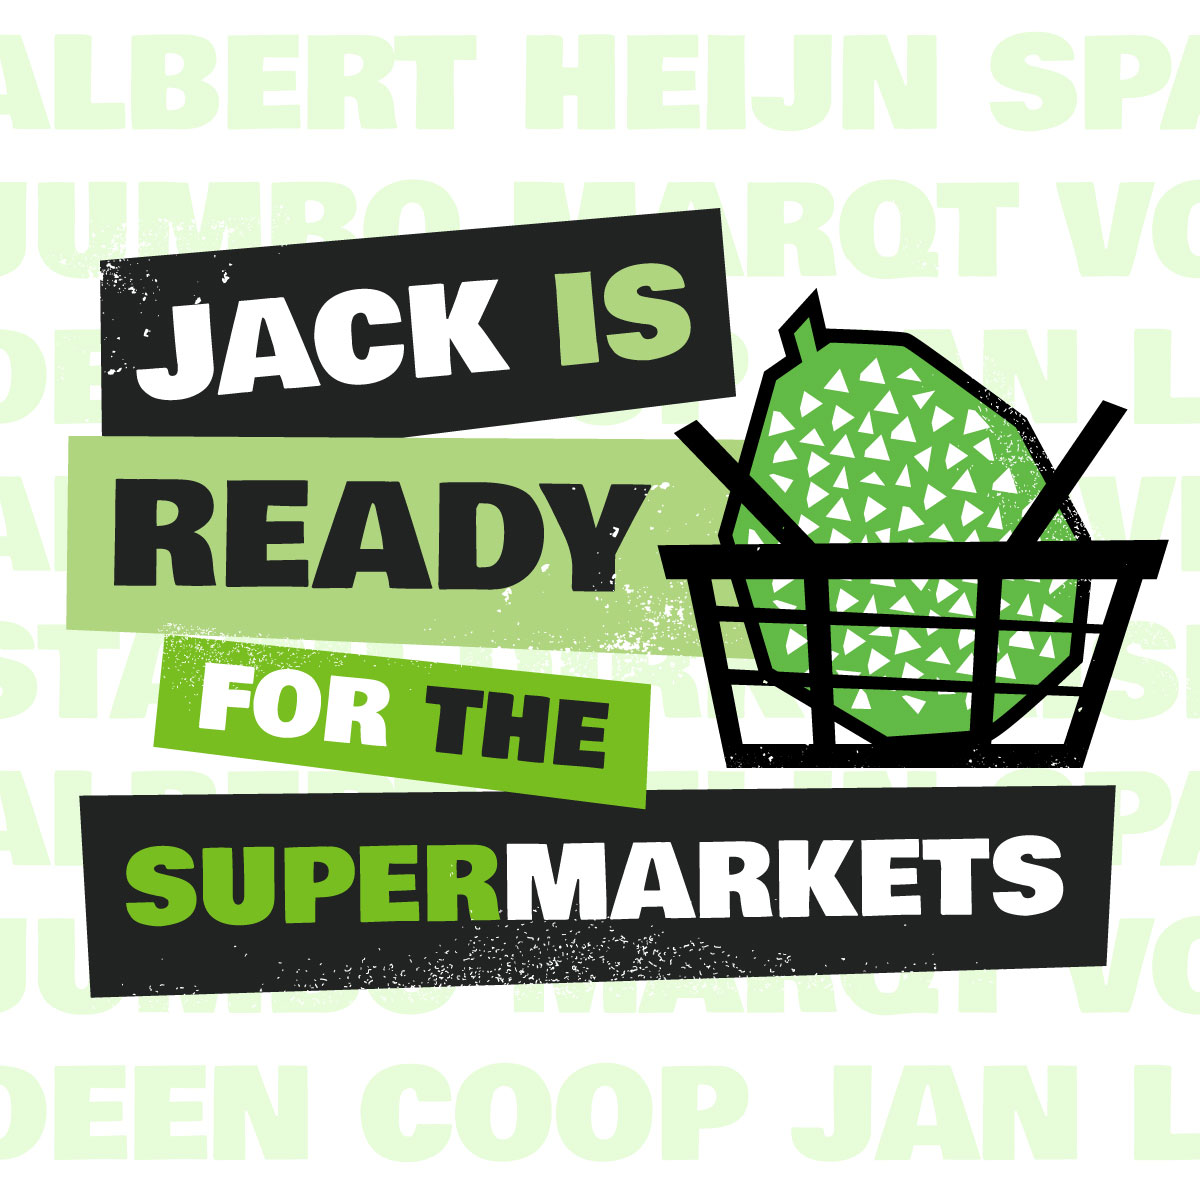 jack-is-ready-for-the-supermarkets